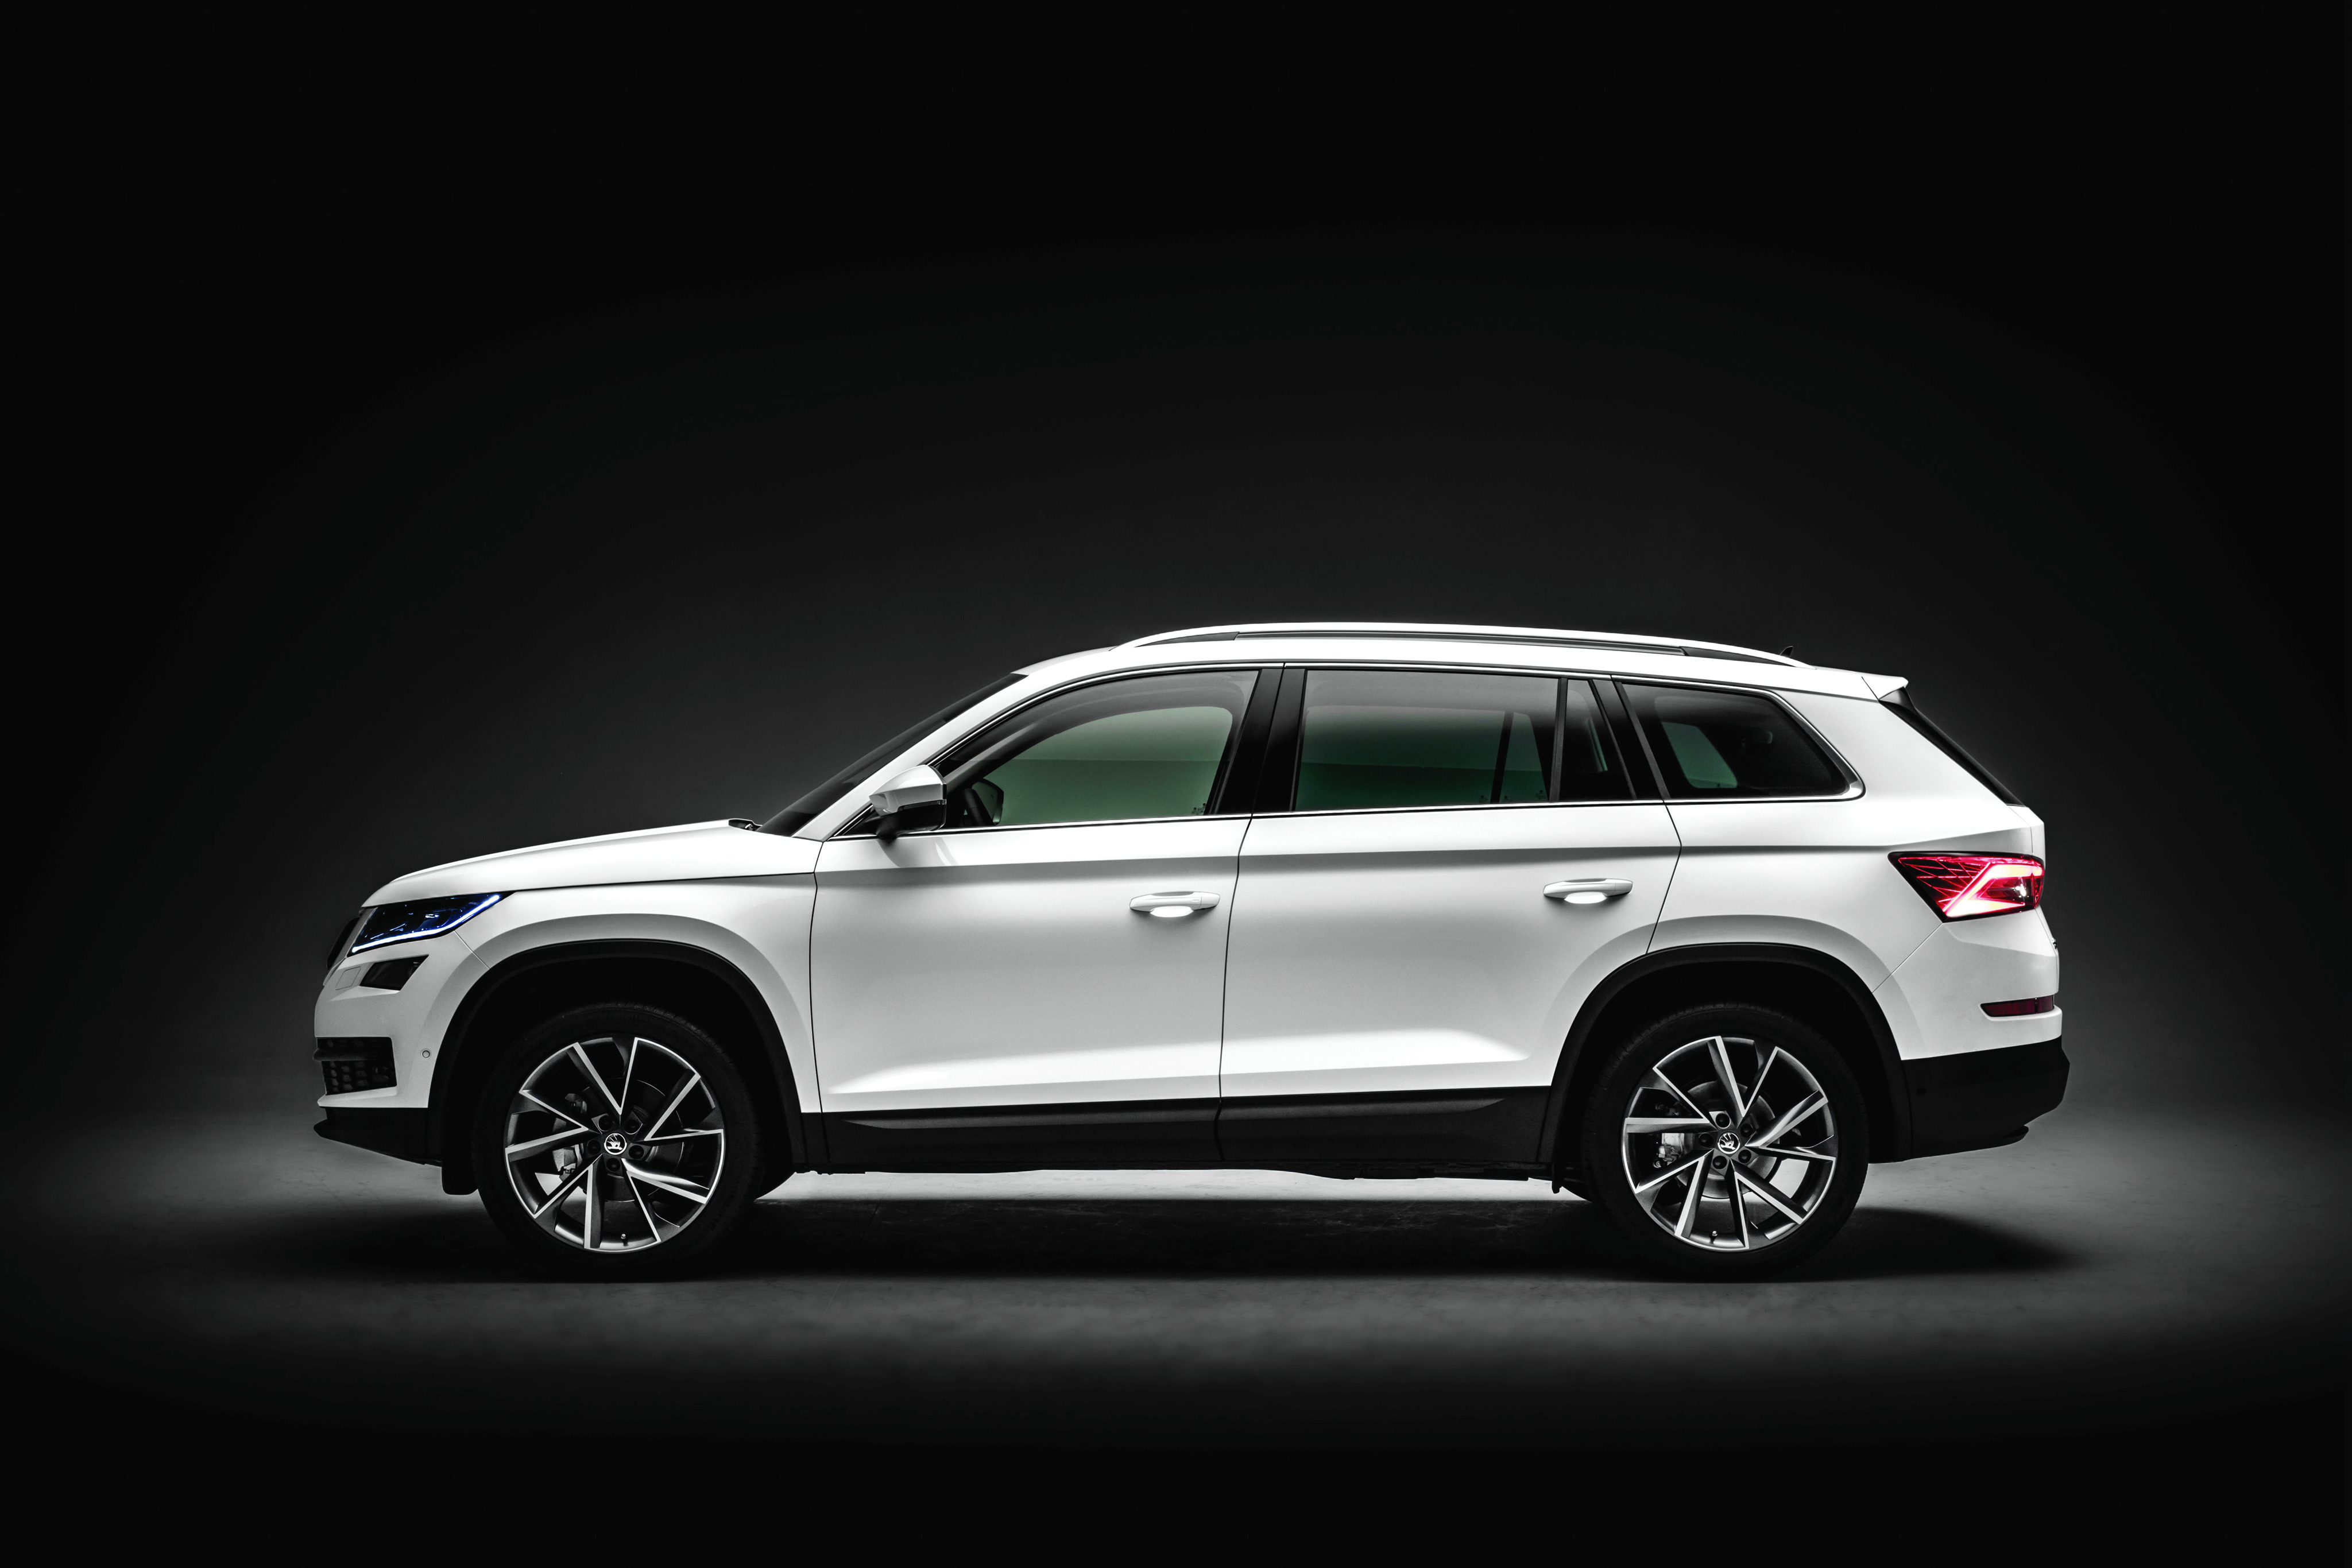 skoda kodiaq 2016 wallpapers images photos pictures backgrounds. Black Bedroom Furniture Sets. Home Design Ideas